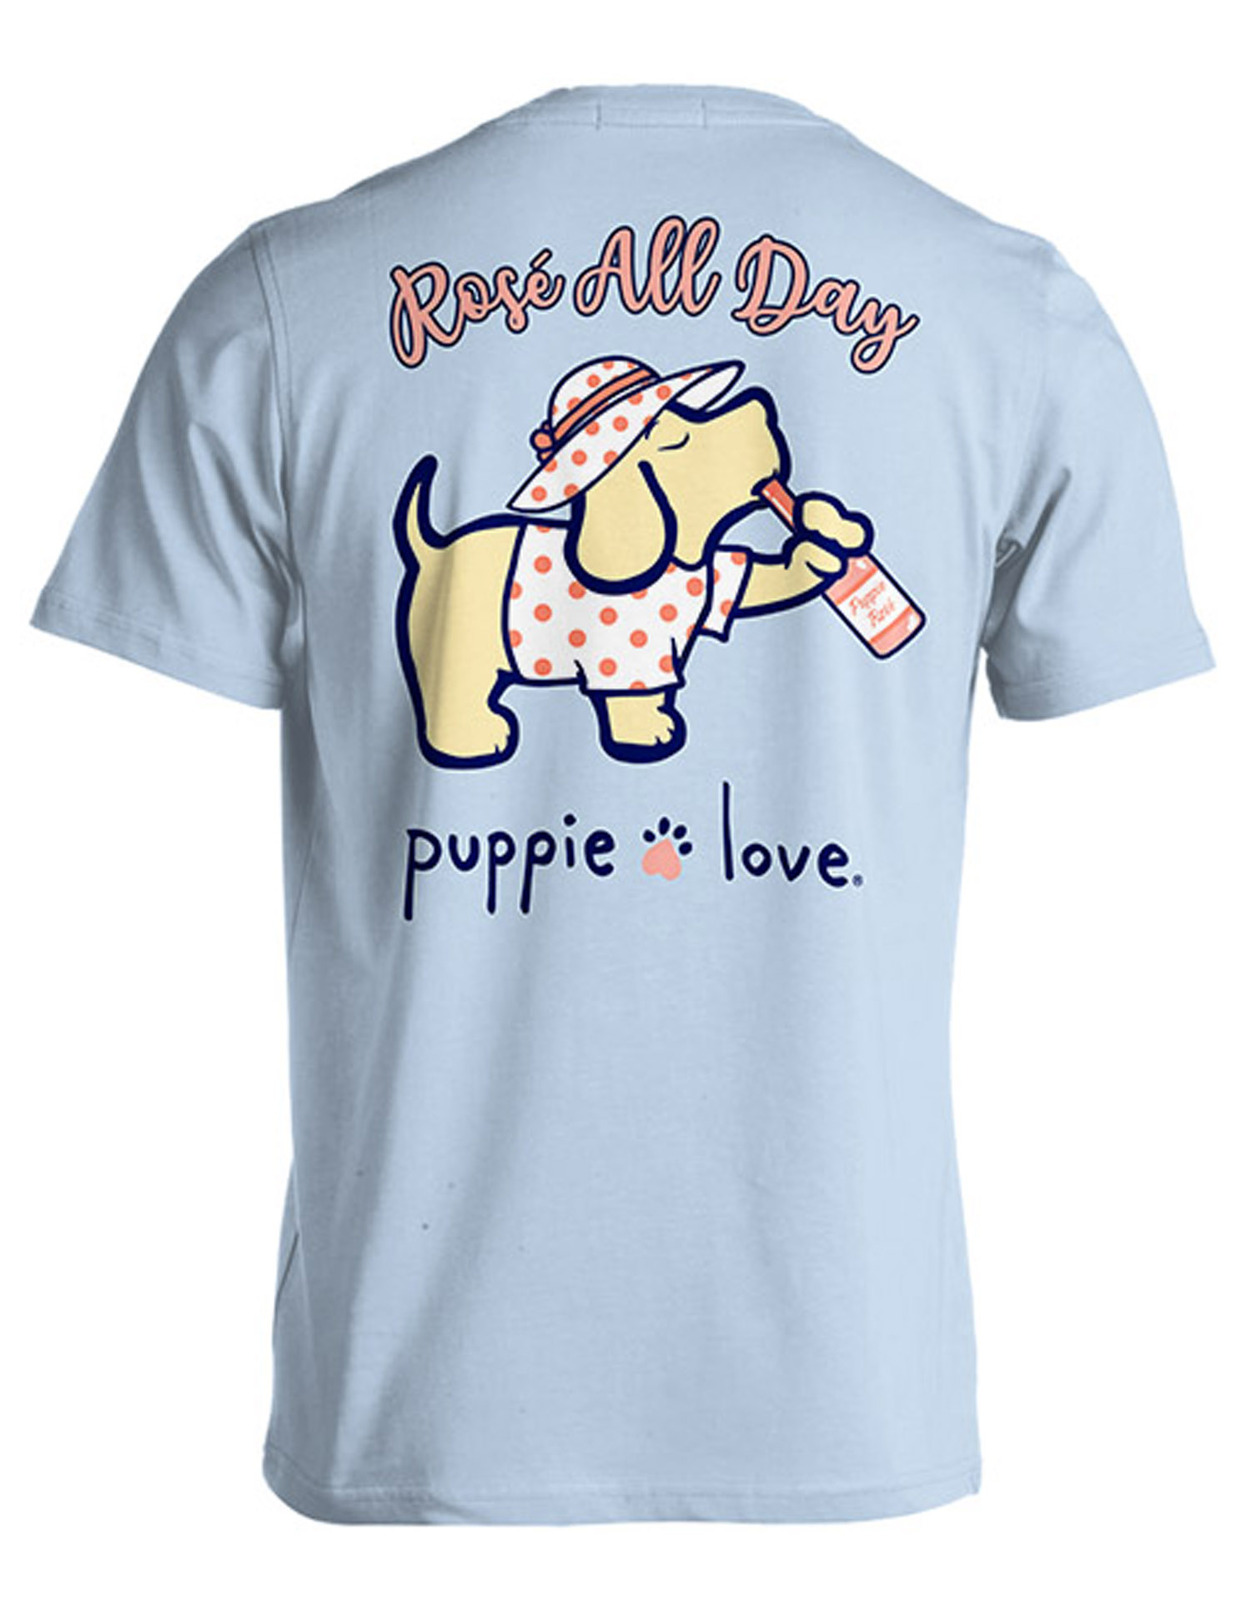 Rose all day pup 205 ltb ss 1